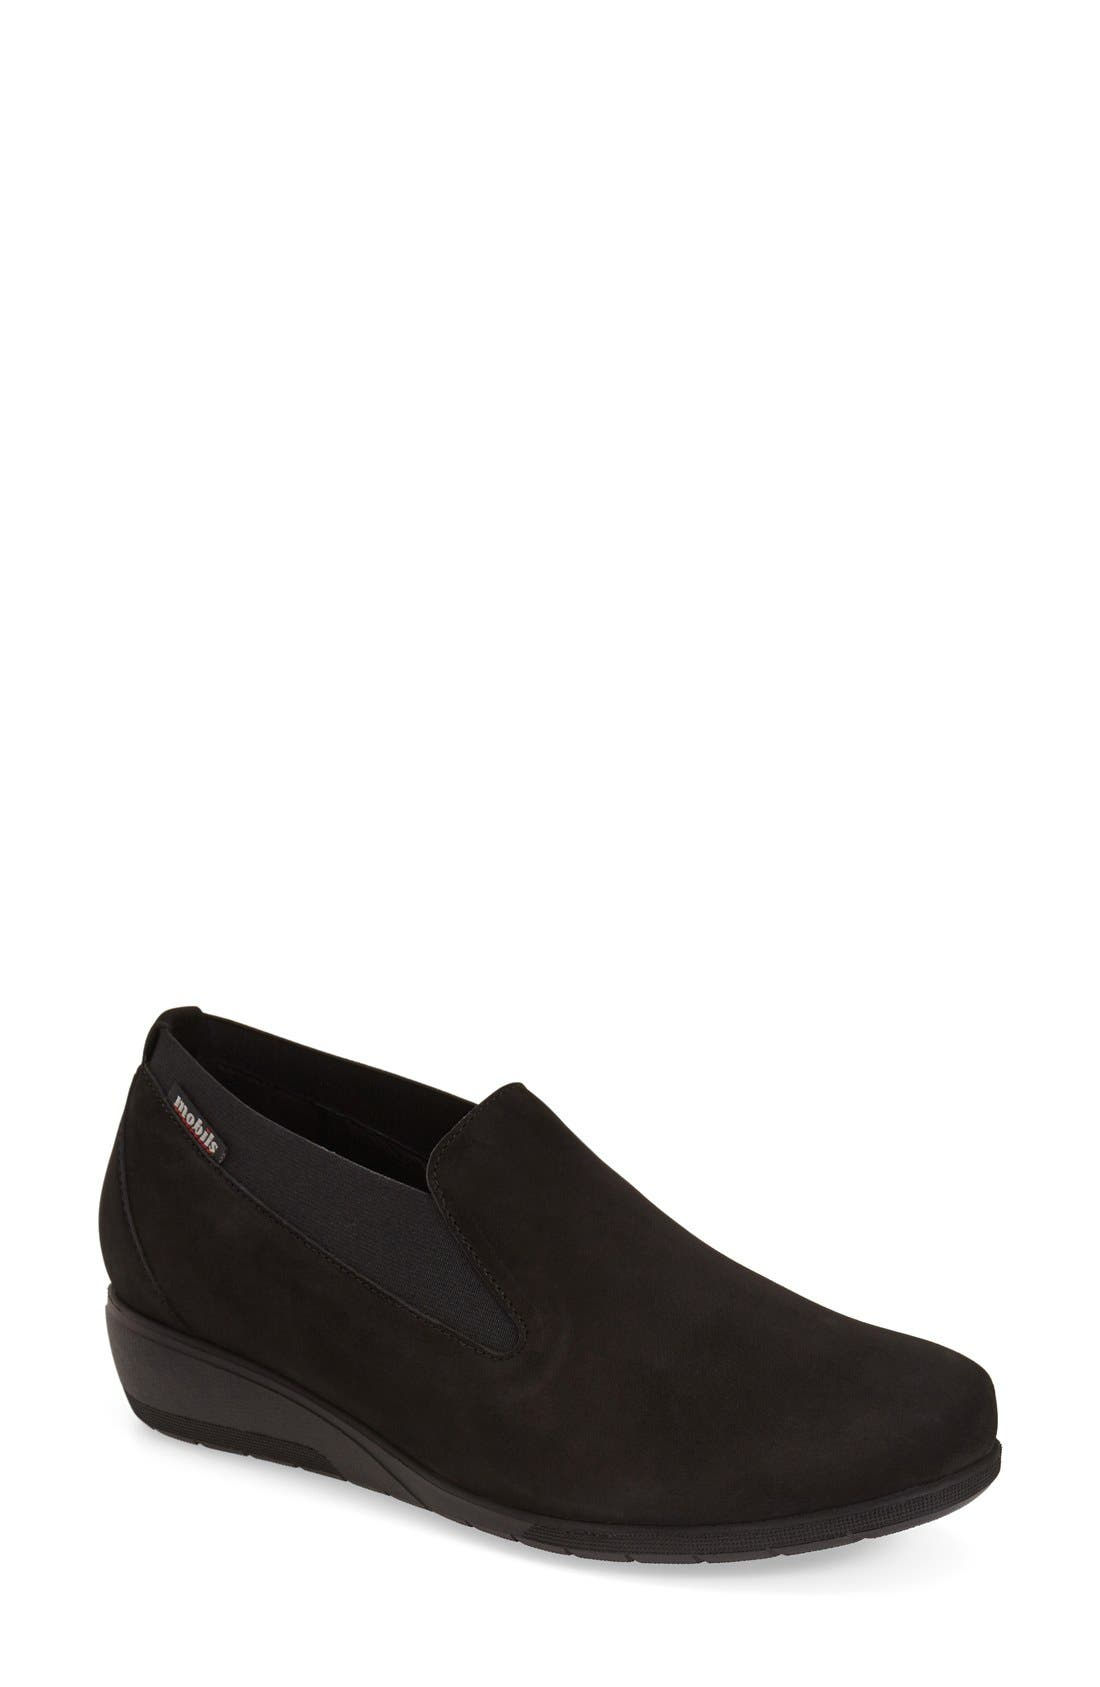 MEPHISTO 'Jerrie' Slip-On Wedge